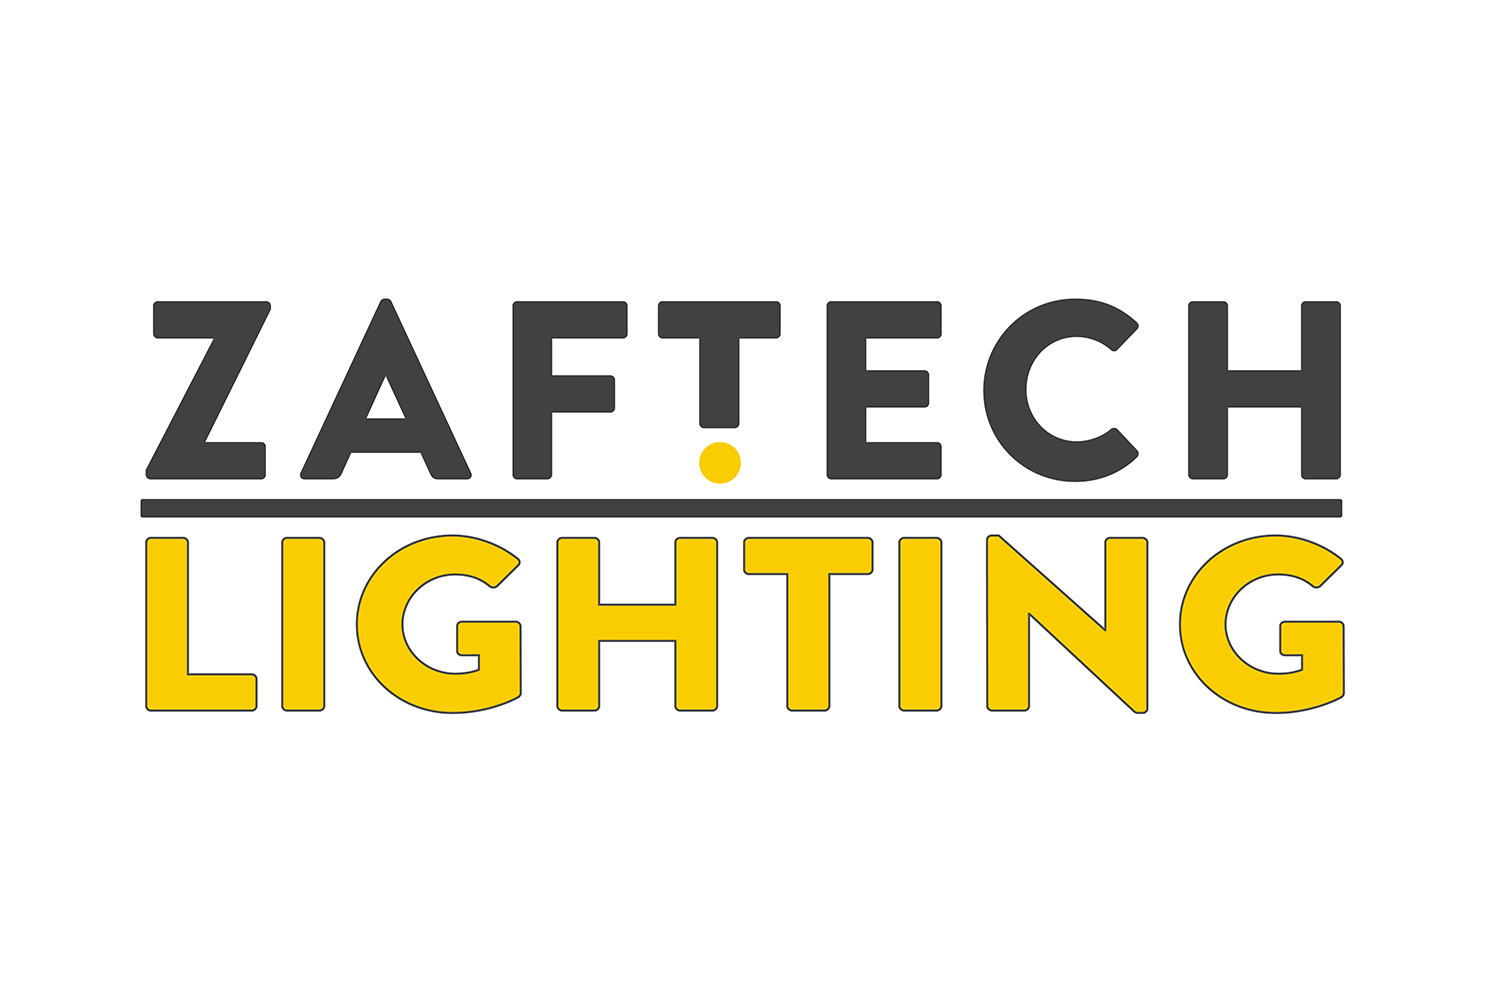 Zaftech Lighting